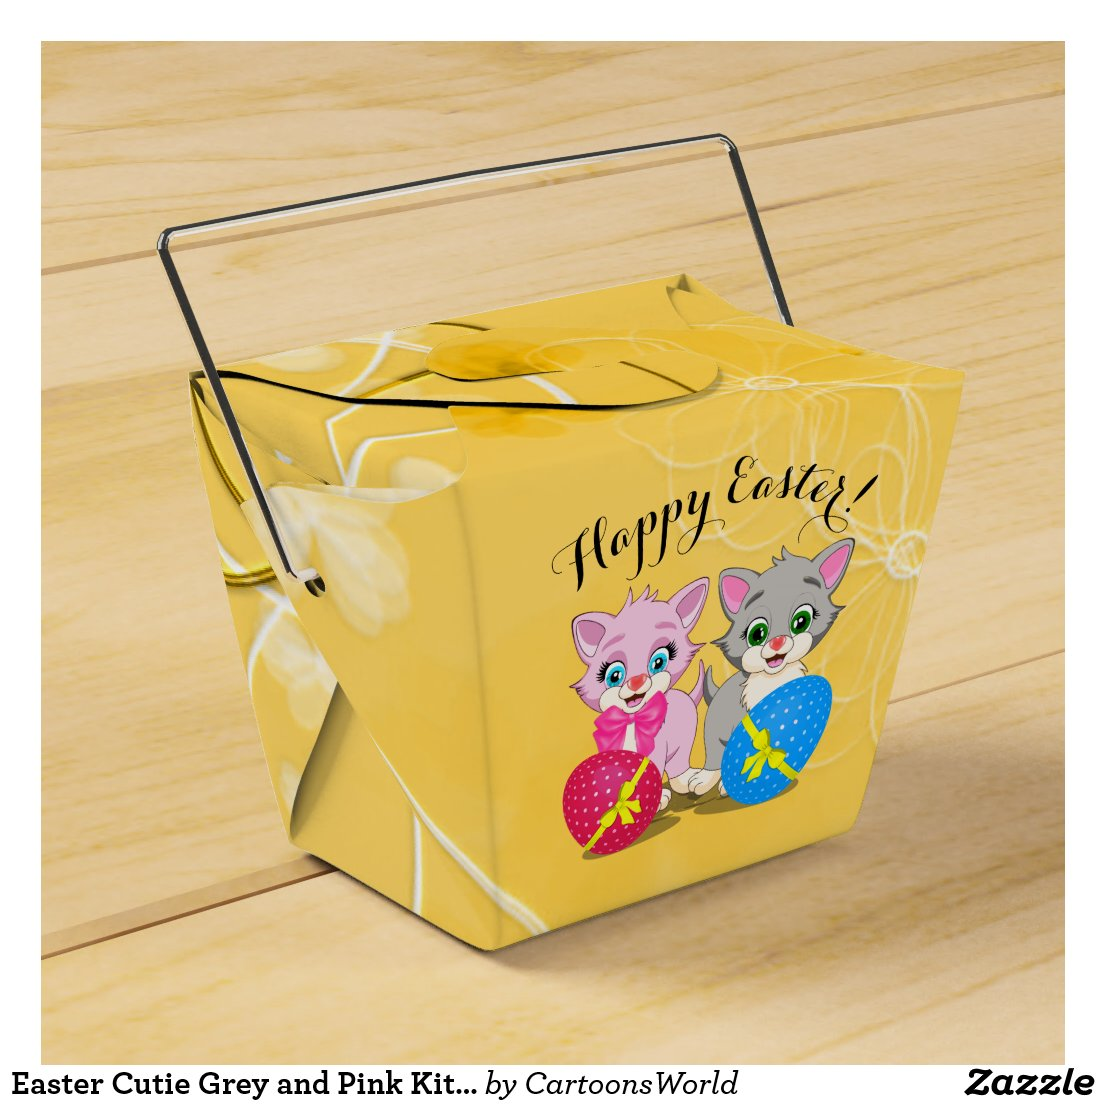 Easter Cutie Grey and Pink Kittens Cartoon Favor Box